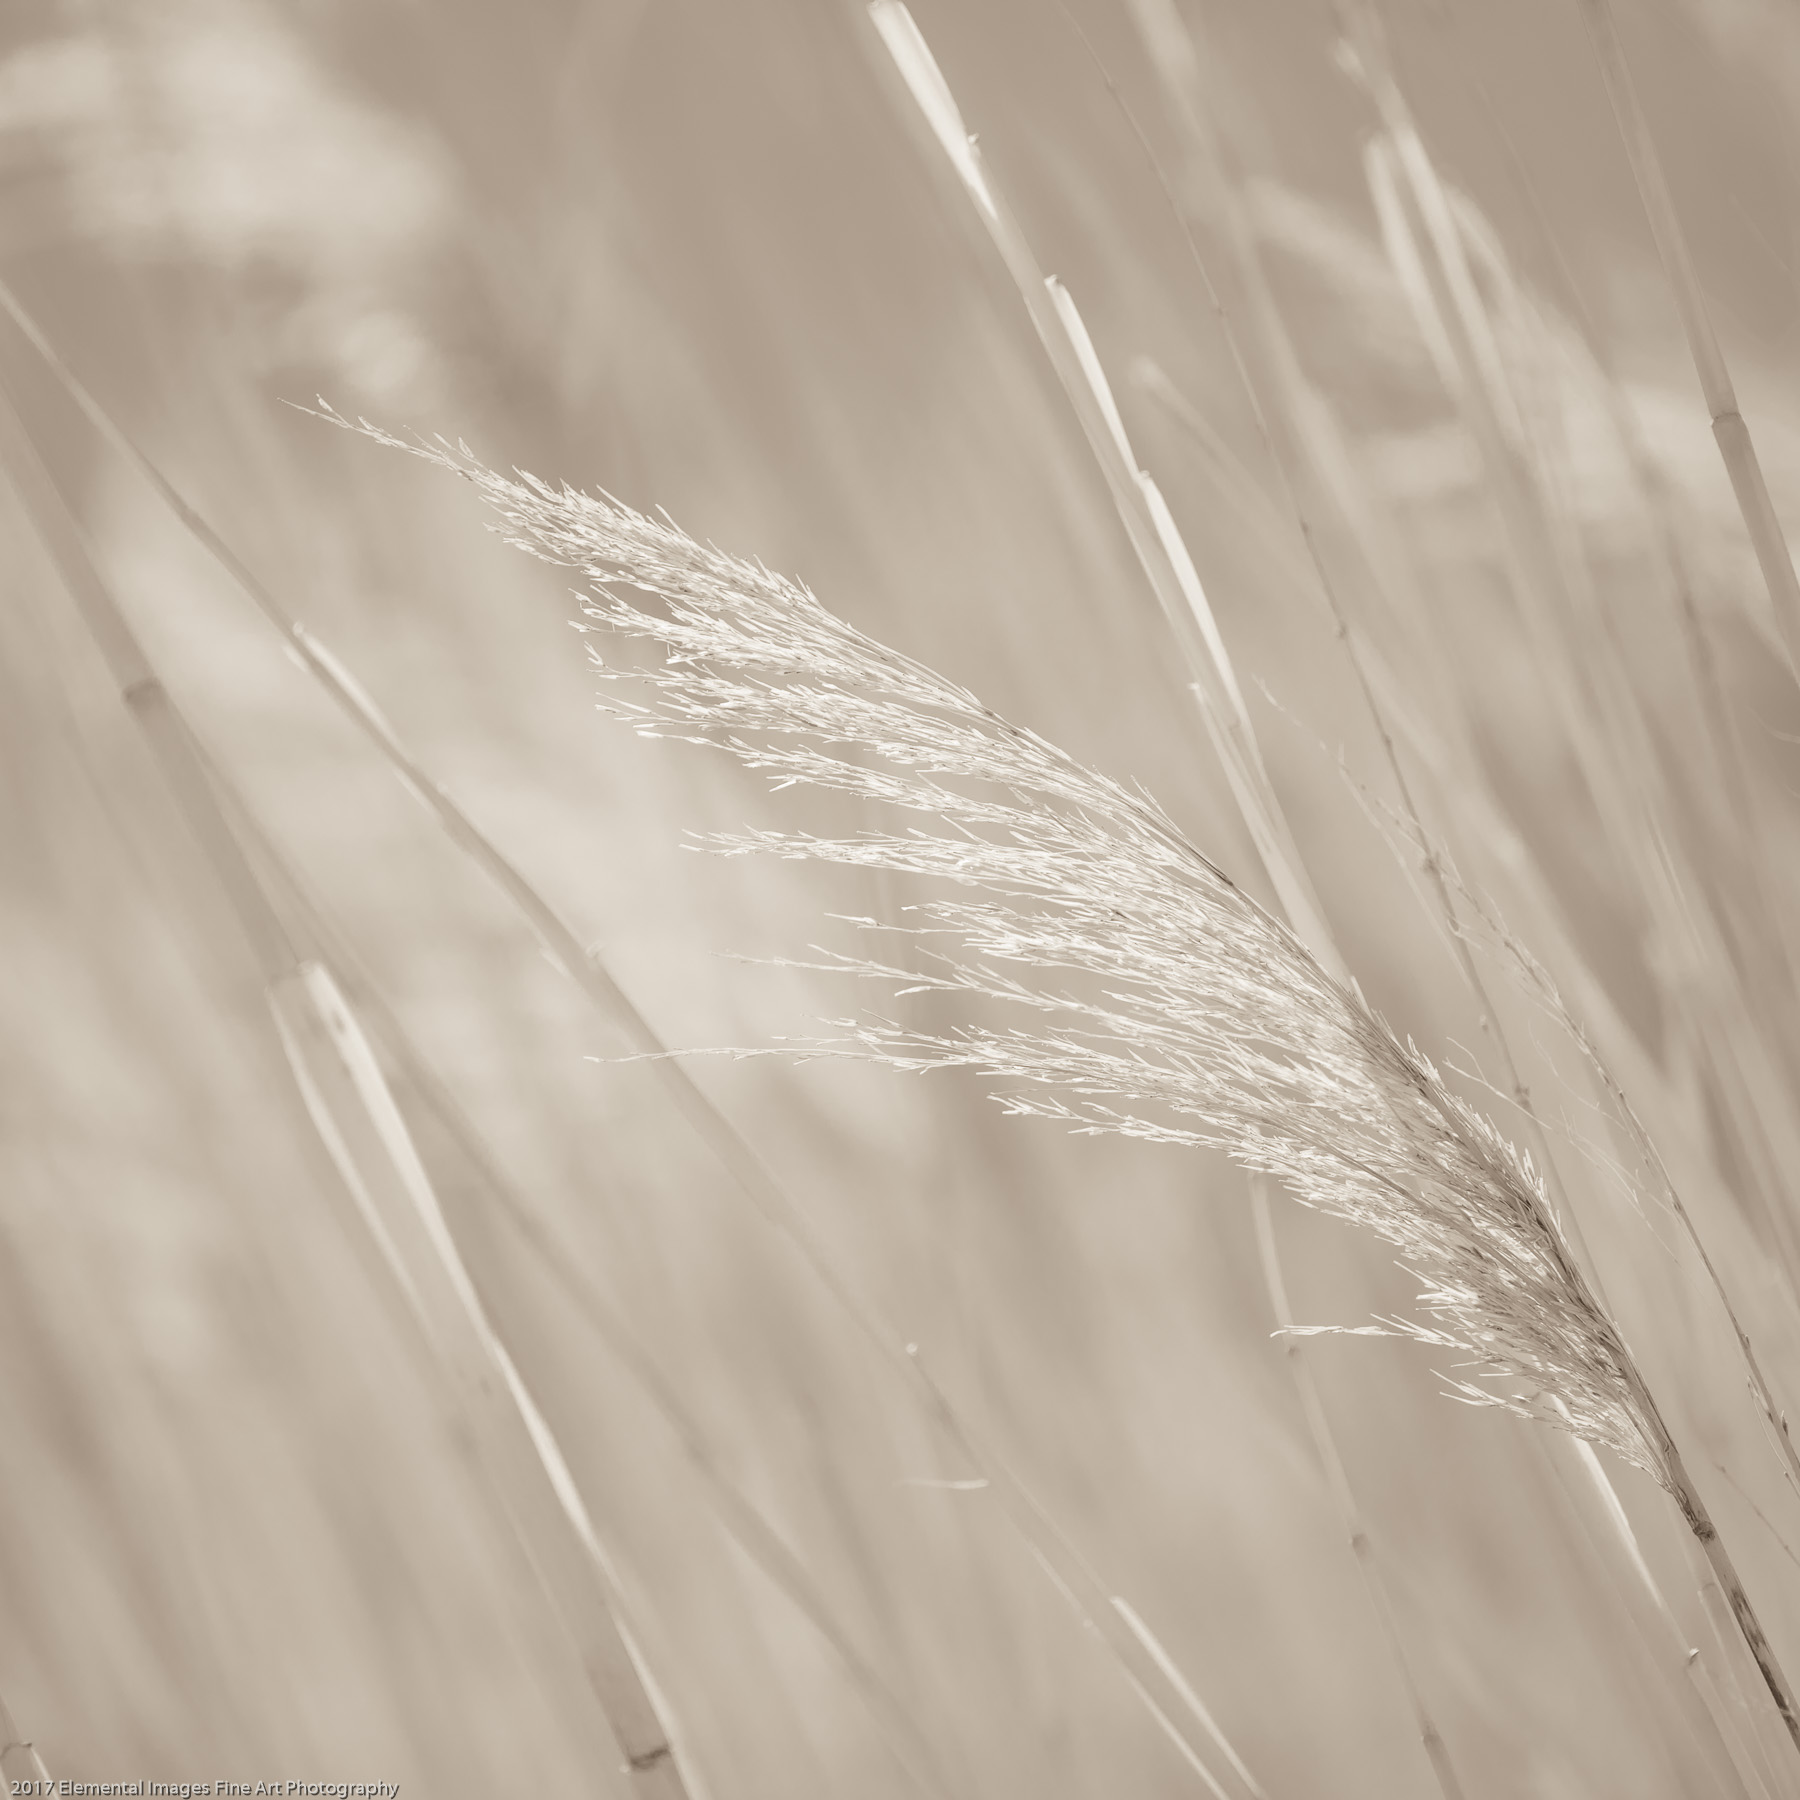 Grasses #148 | Summer Lake | OR | USA - © 2017 Elemental Images Fine Art Photography - All Rights Reserved Worldwide